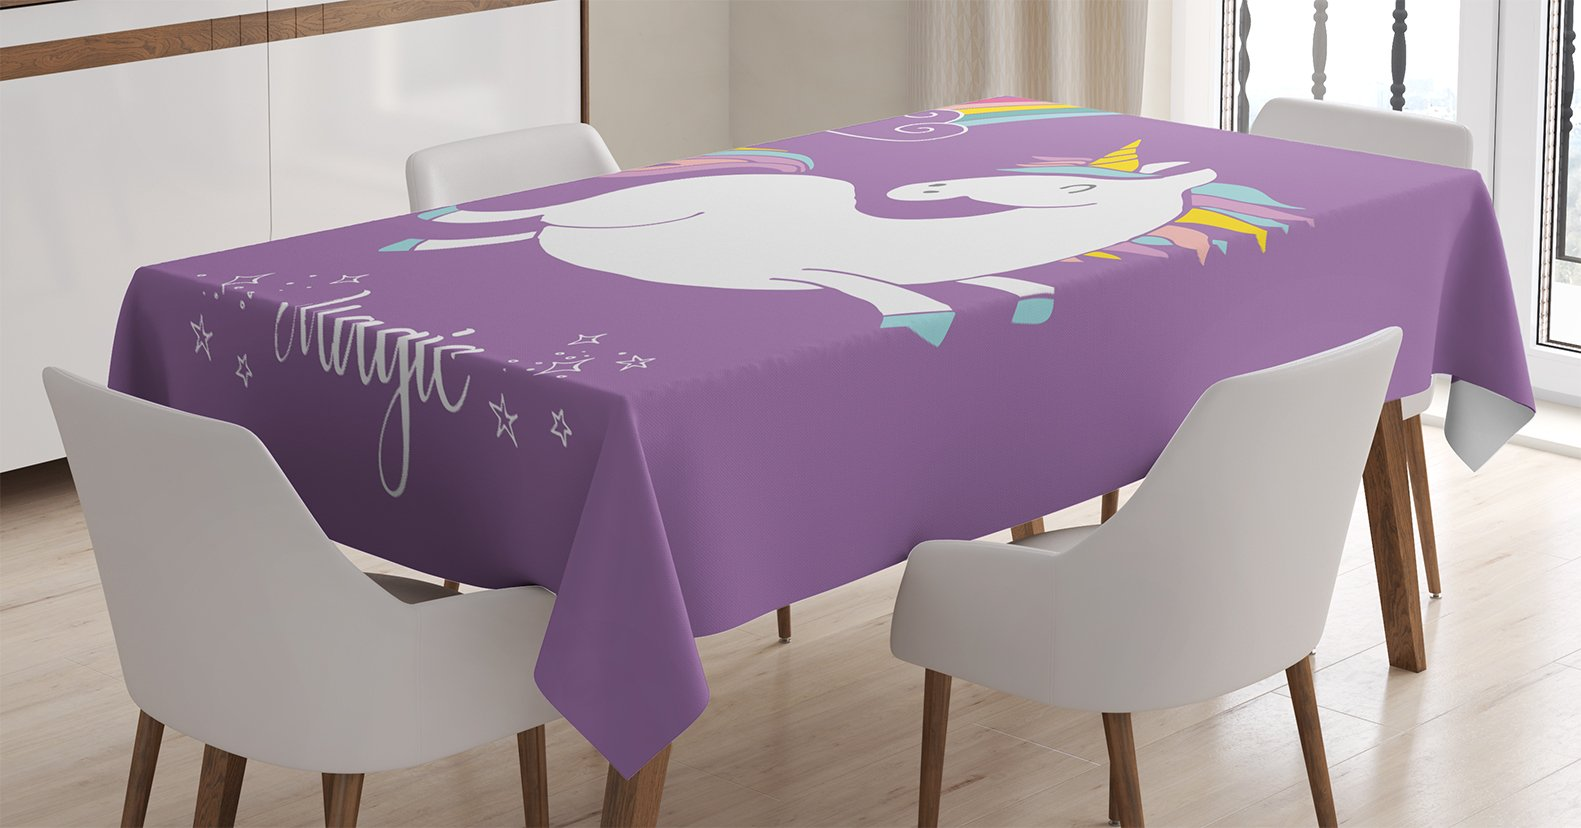 Ambesonne Unicorn Tablecloth, Mythical Animal with Clouds and Rainbow Figure Fairy Cute Unicorn Image Print, Dining Room Kitchen Rectangular Table Cover, 52 W X 70 L inches, Lavander White